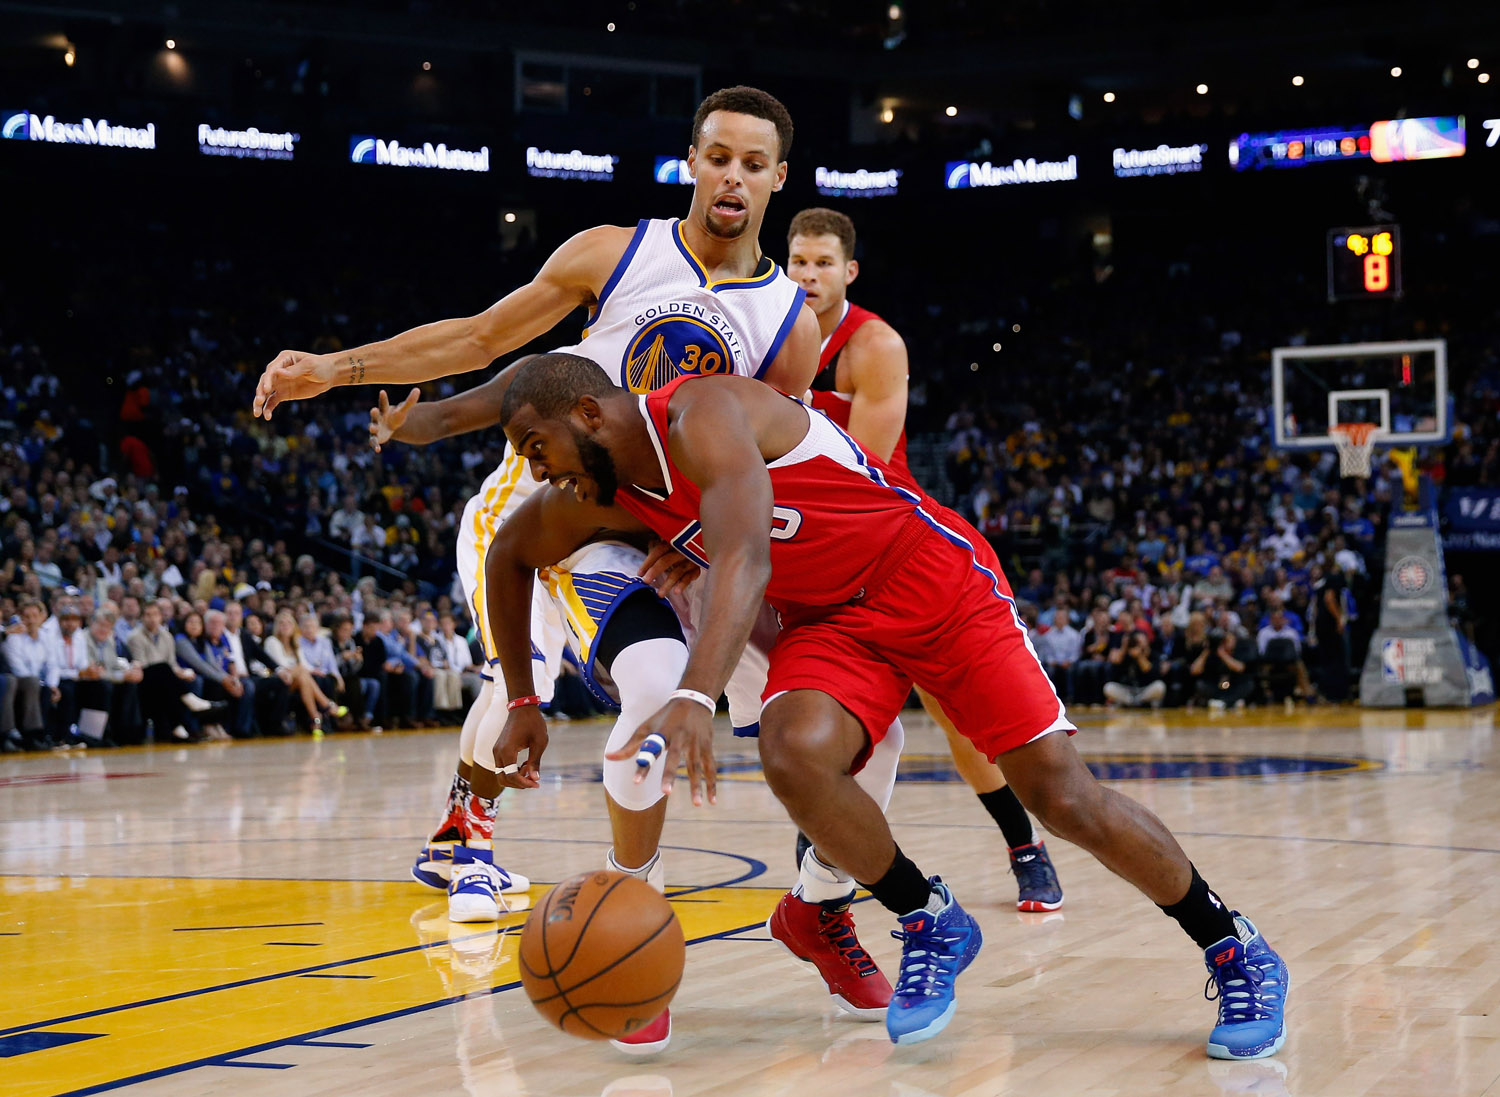 OAKLAND, CA - NOVEMBER 04:  Chris Paul #3 of the Los Angeles Clippers drives on Stephen Curry #30 of the Golden State Warriors at ORACLE Arena on November 4, 2015 in Oakland, California. NOTE TO USER: User expressly acknowledges and agrees that, by downloading and or using this photograph, User is consenting to the terms and conditions of the Getty Images License Agreement.  (Photo by Ezra Shaw/Getty Images)